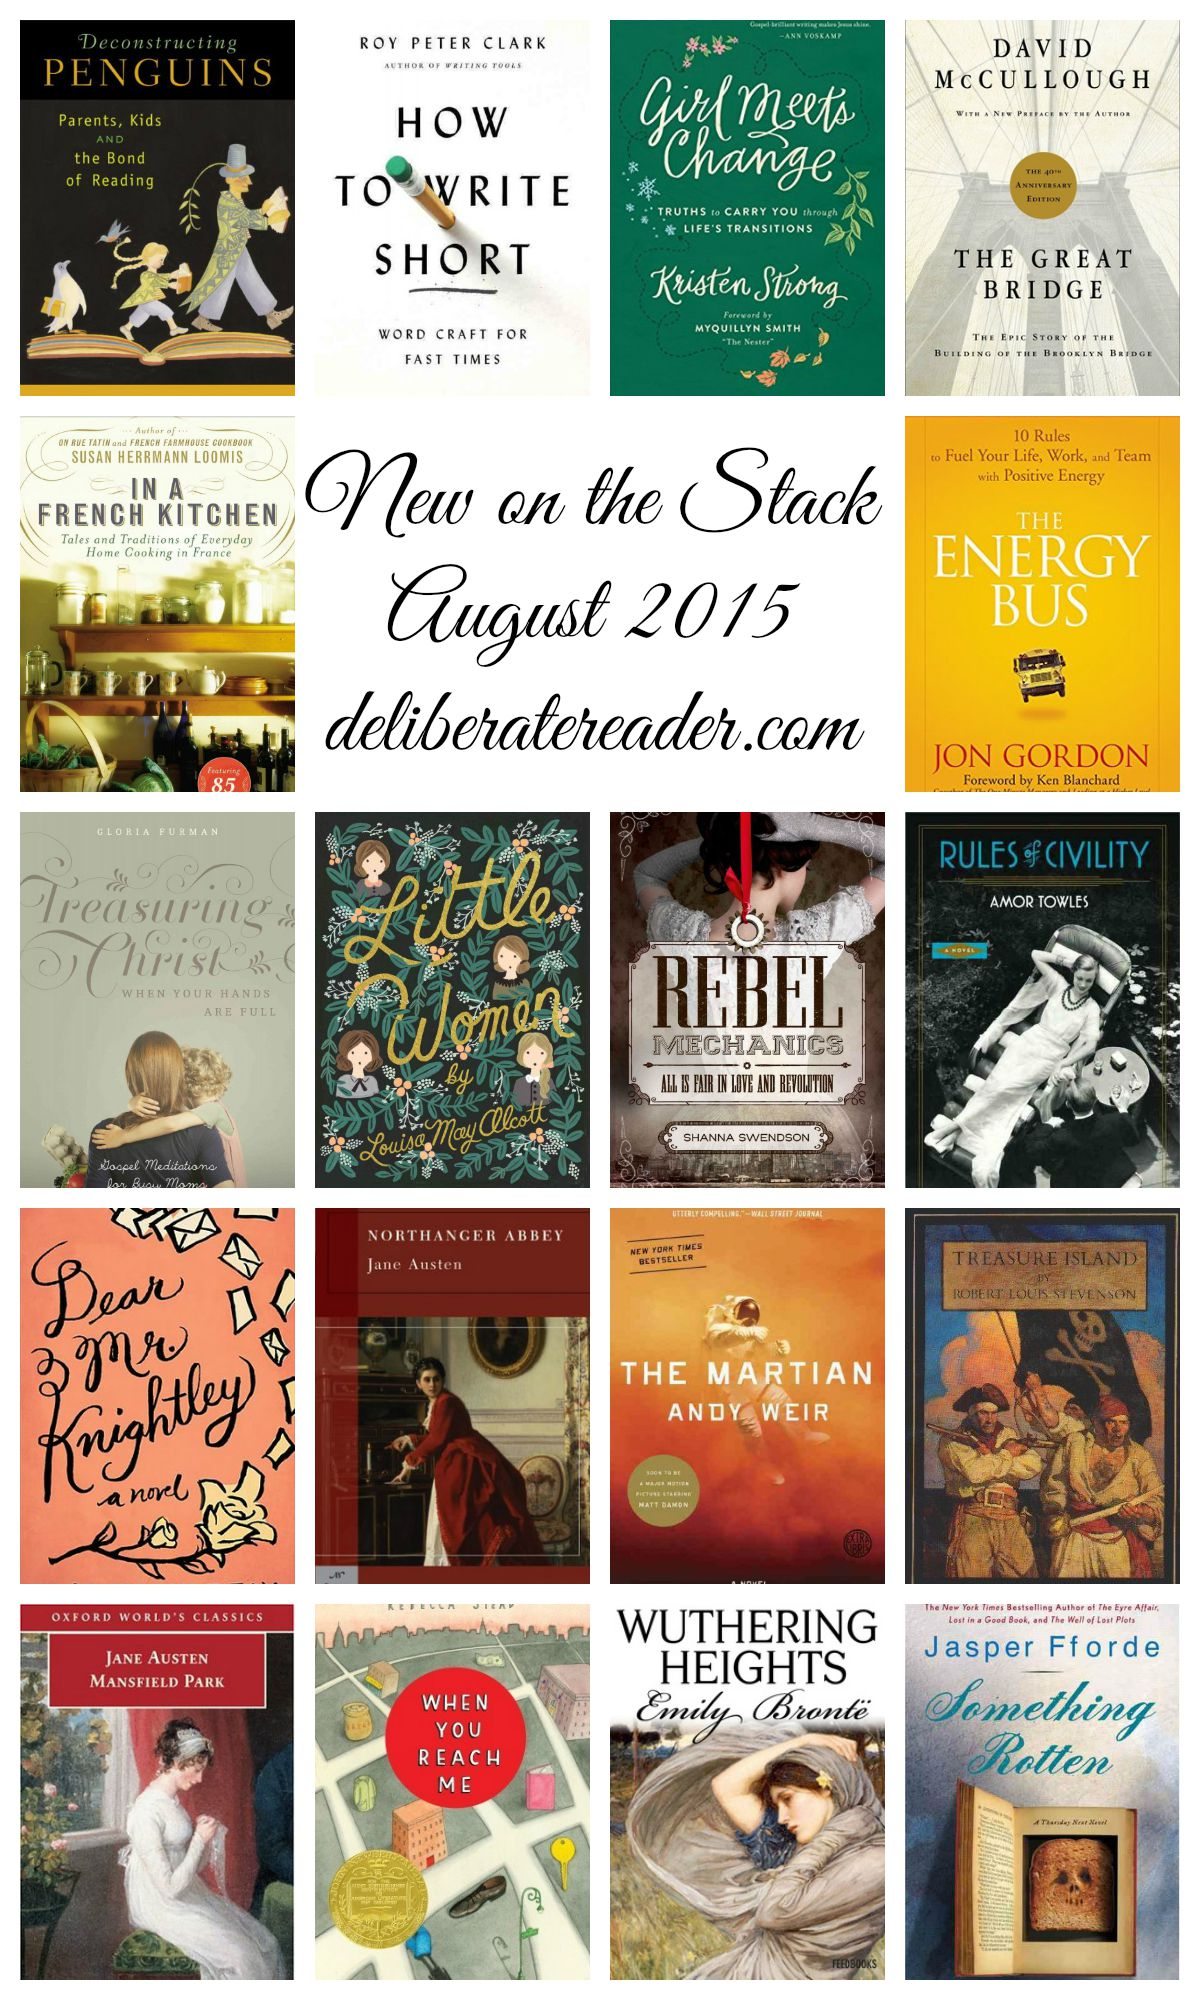 New on the Stack in August 2015